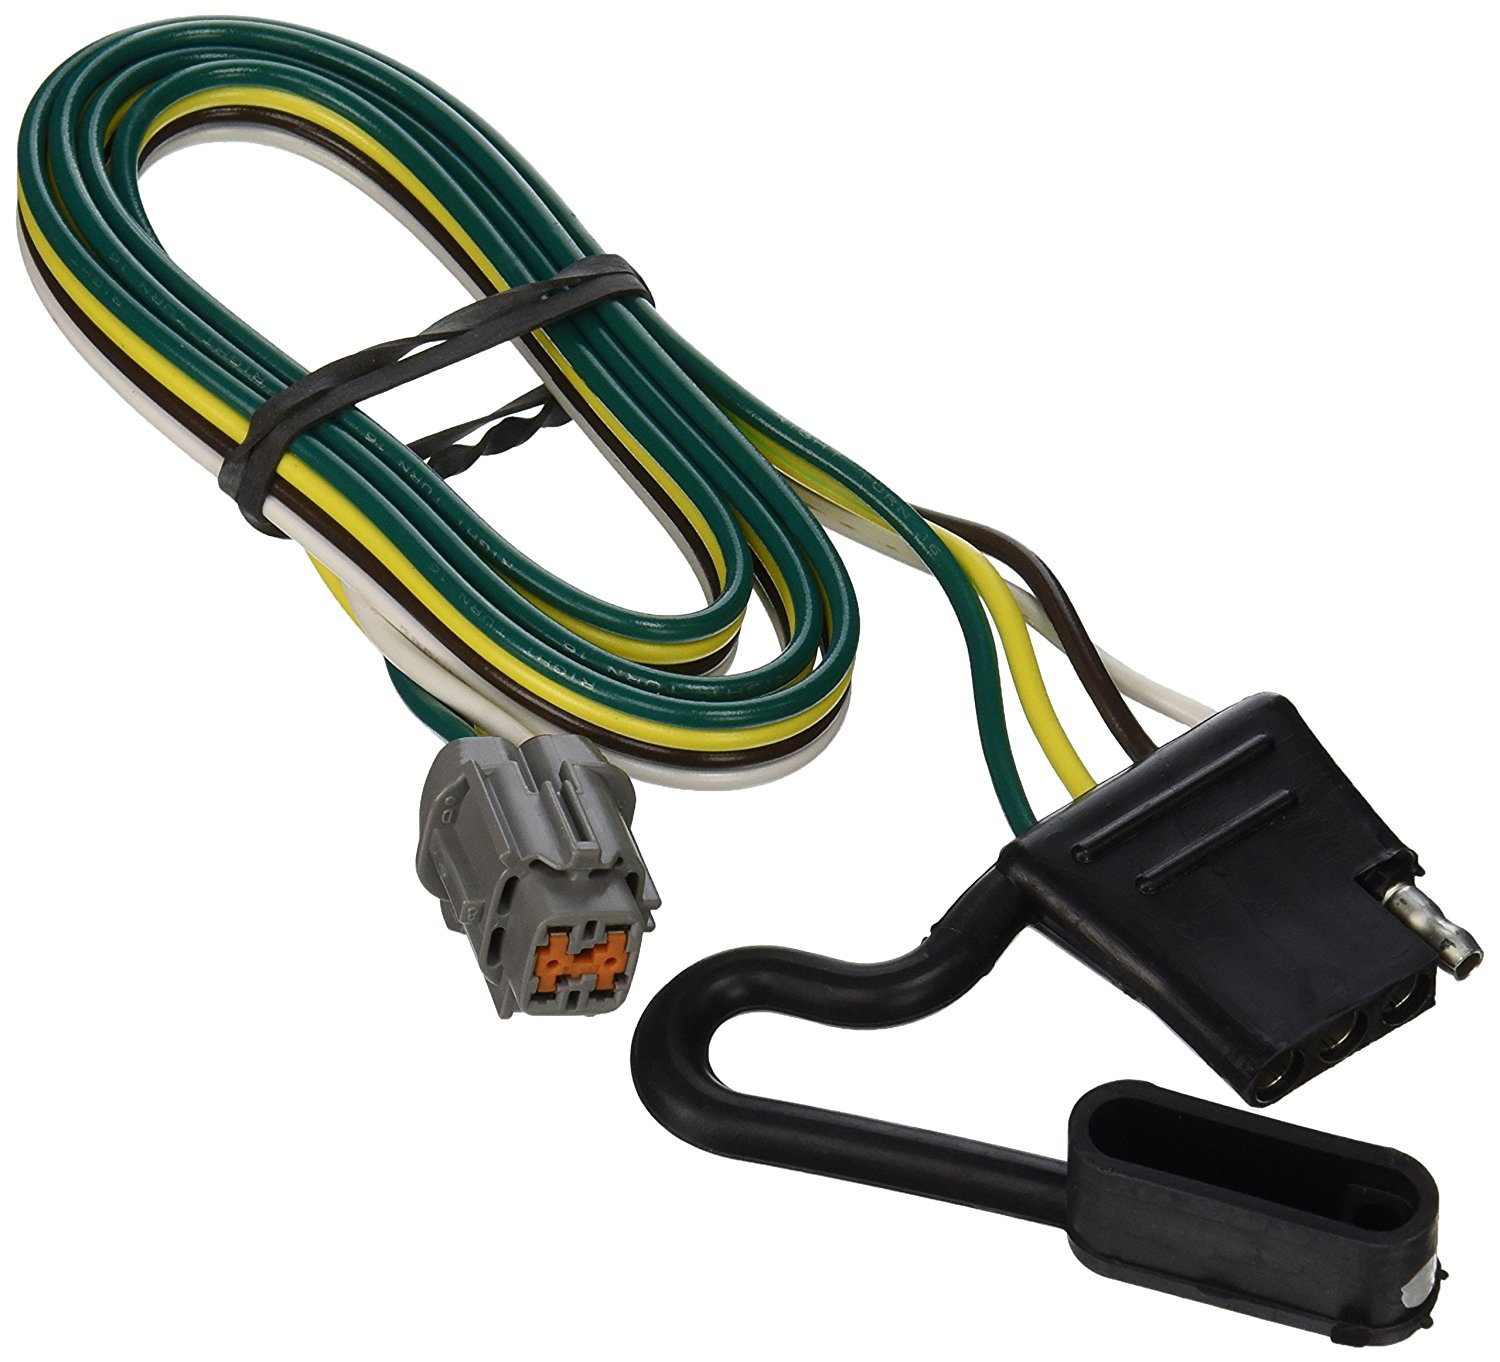 Dodge Tow Package Wiring Diagram Solutions Towing Gm Harness To 4 Flat Diagrams Schematics